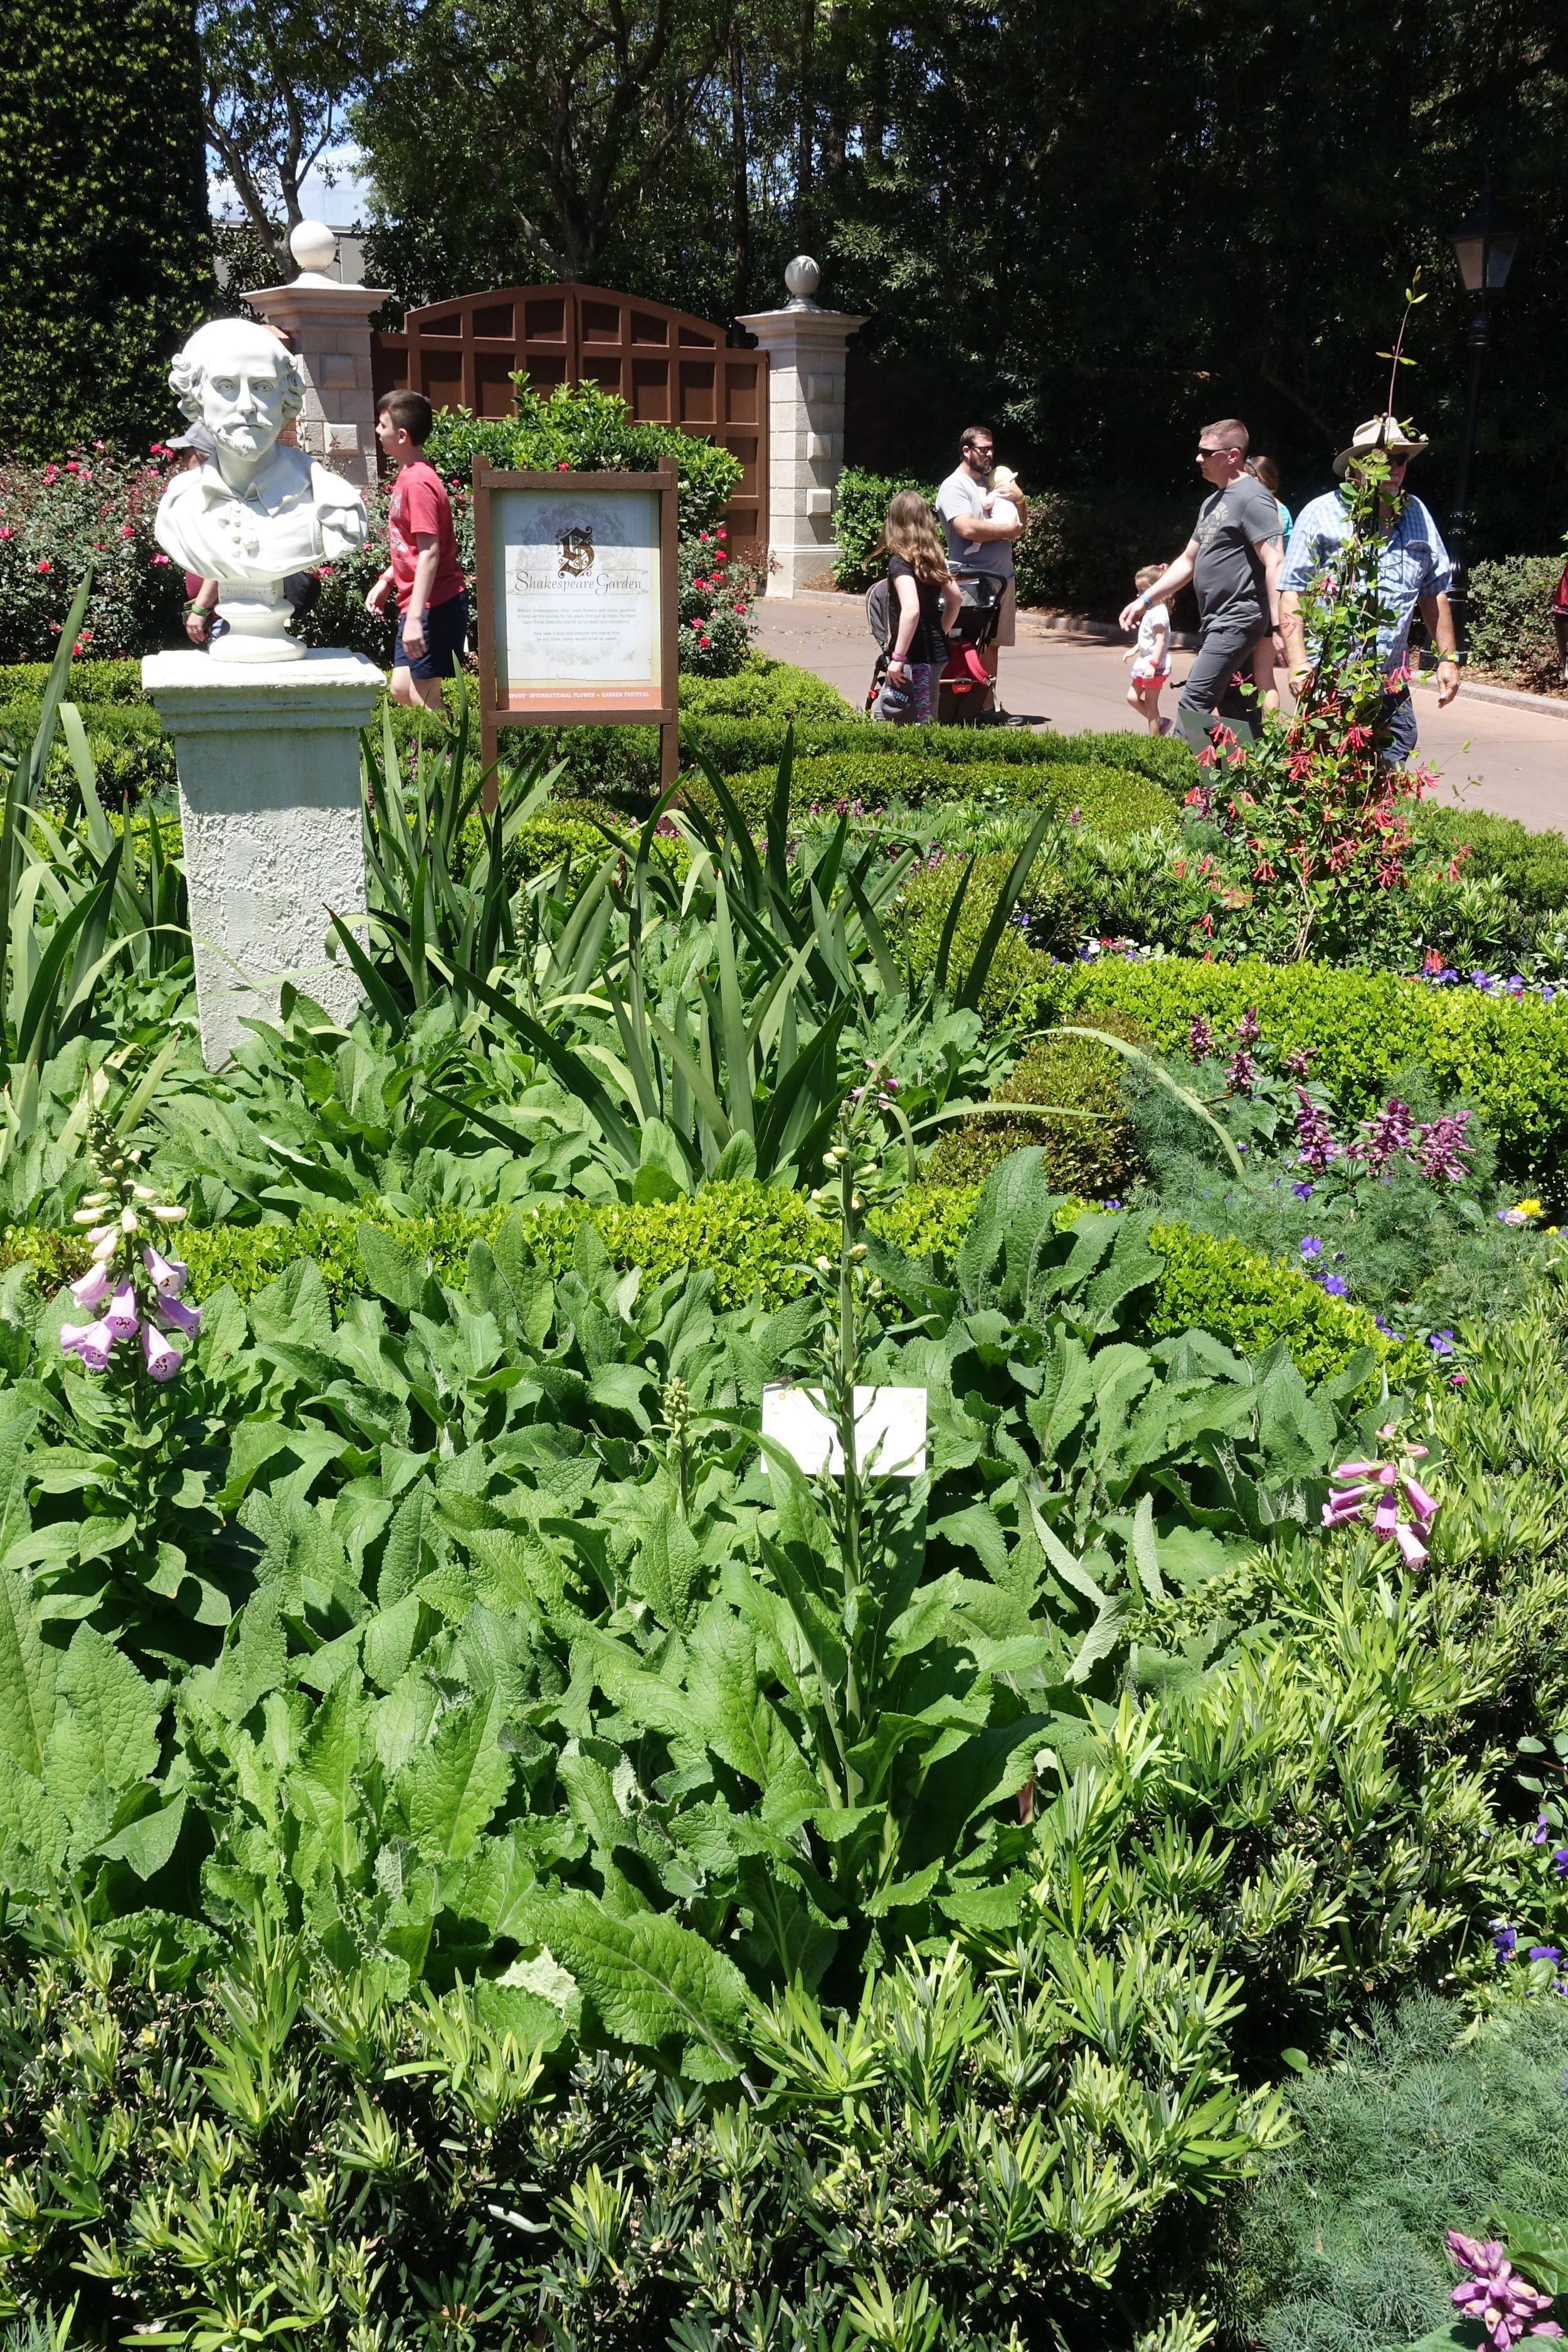 Shakespeare's garden in the England pavilion. It includes plants mentioned in his plays and sonnets with the lines displayed on placards.